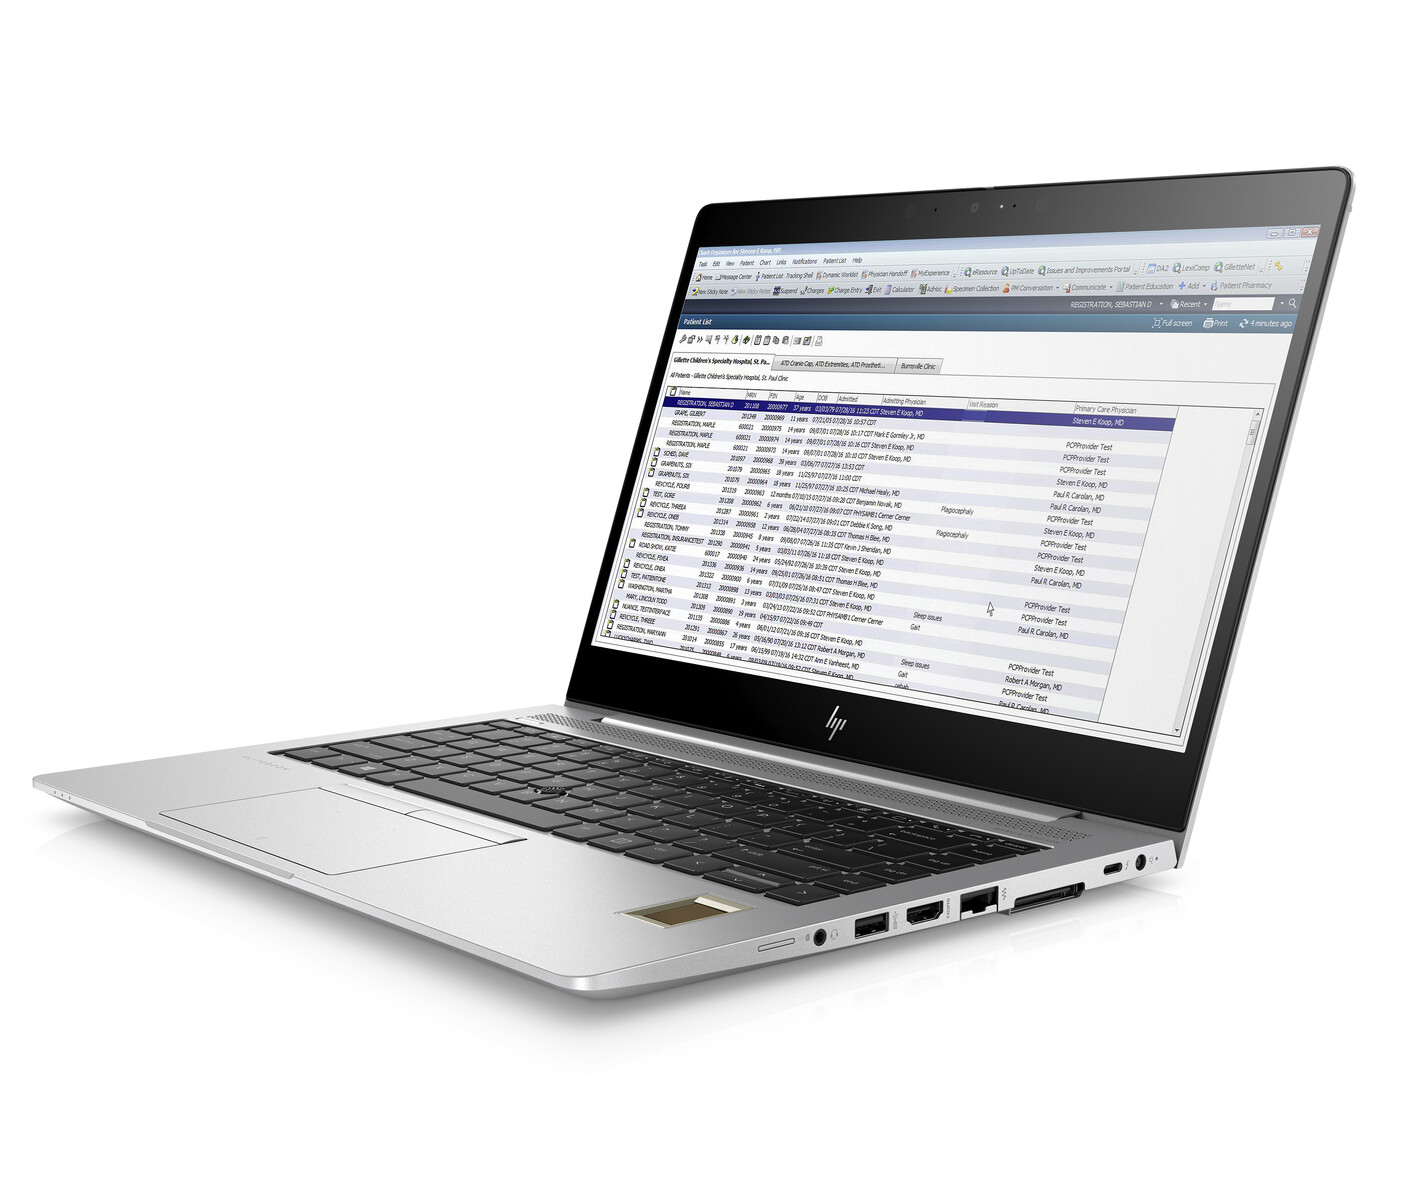 HP wants to help doctors with the EliteBook 840 G6